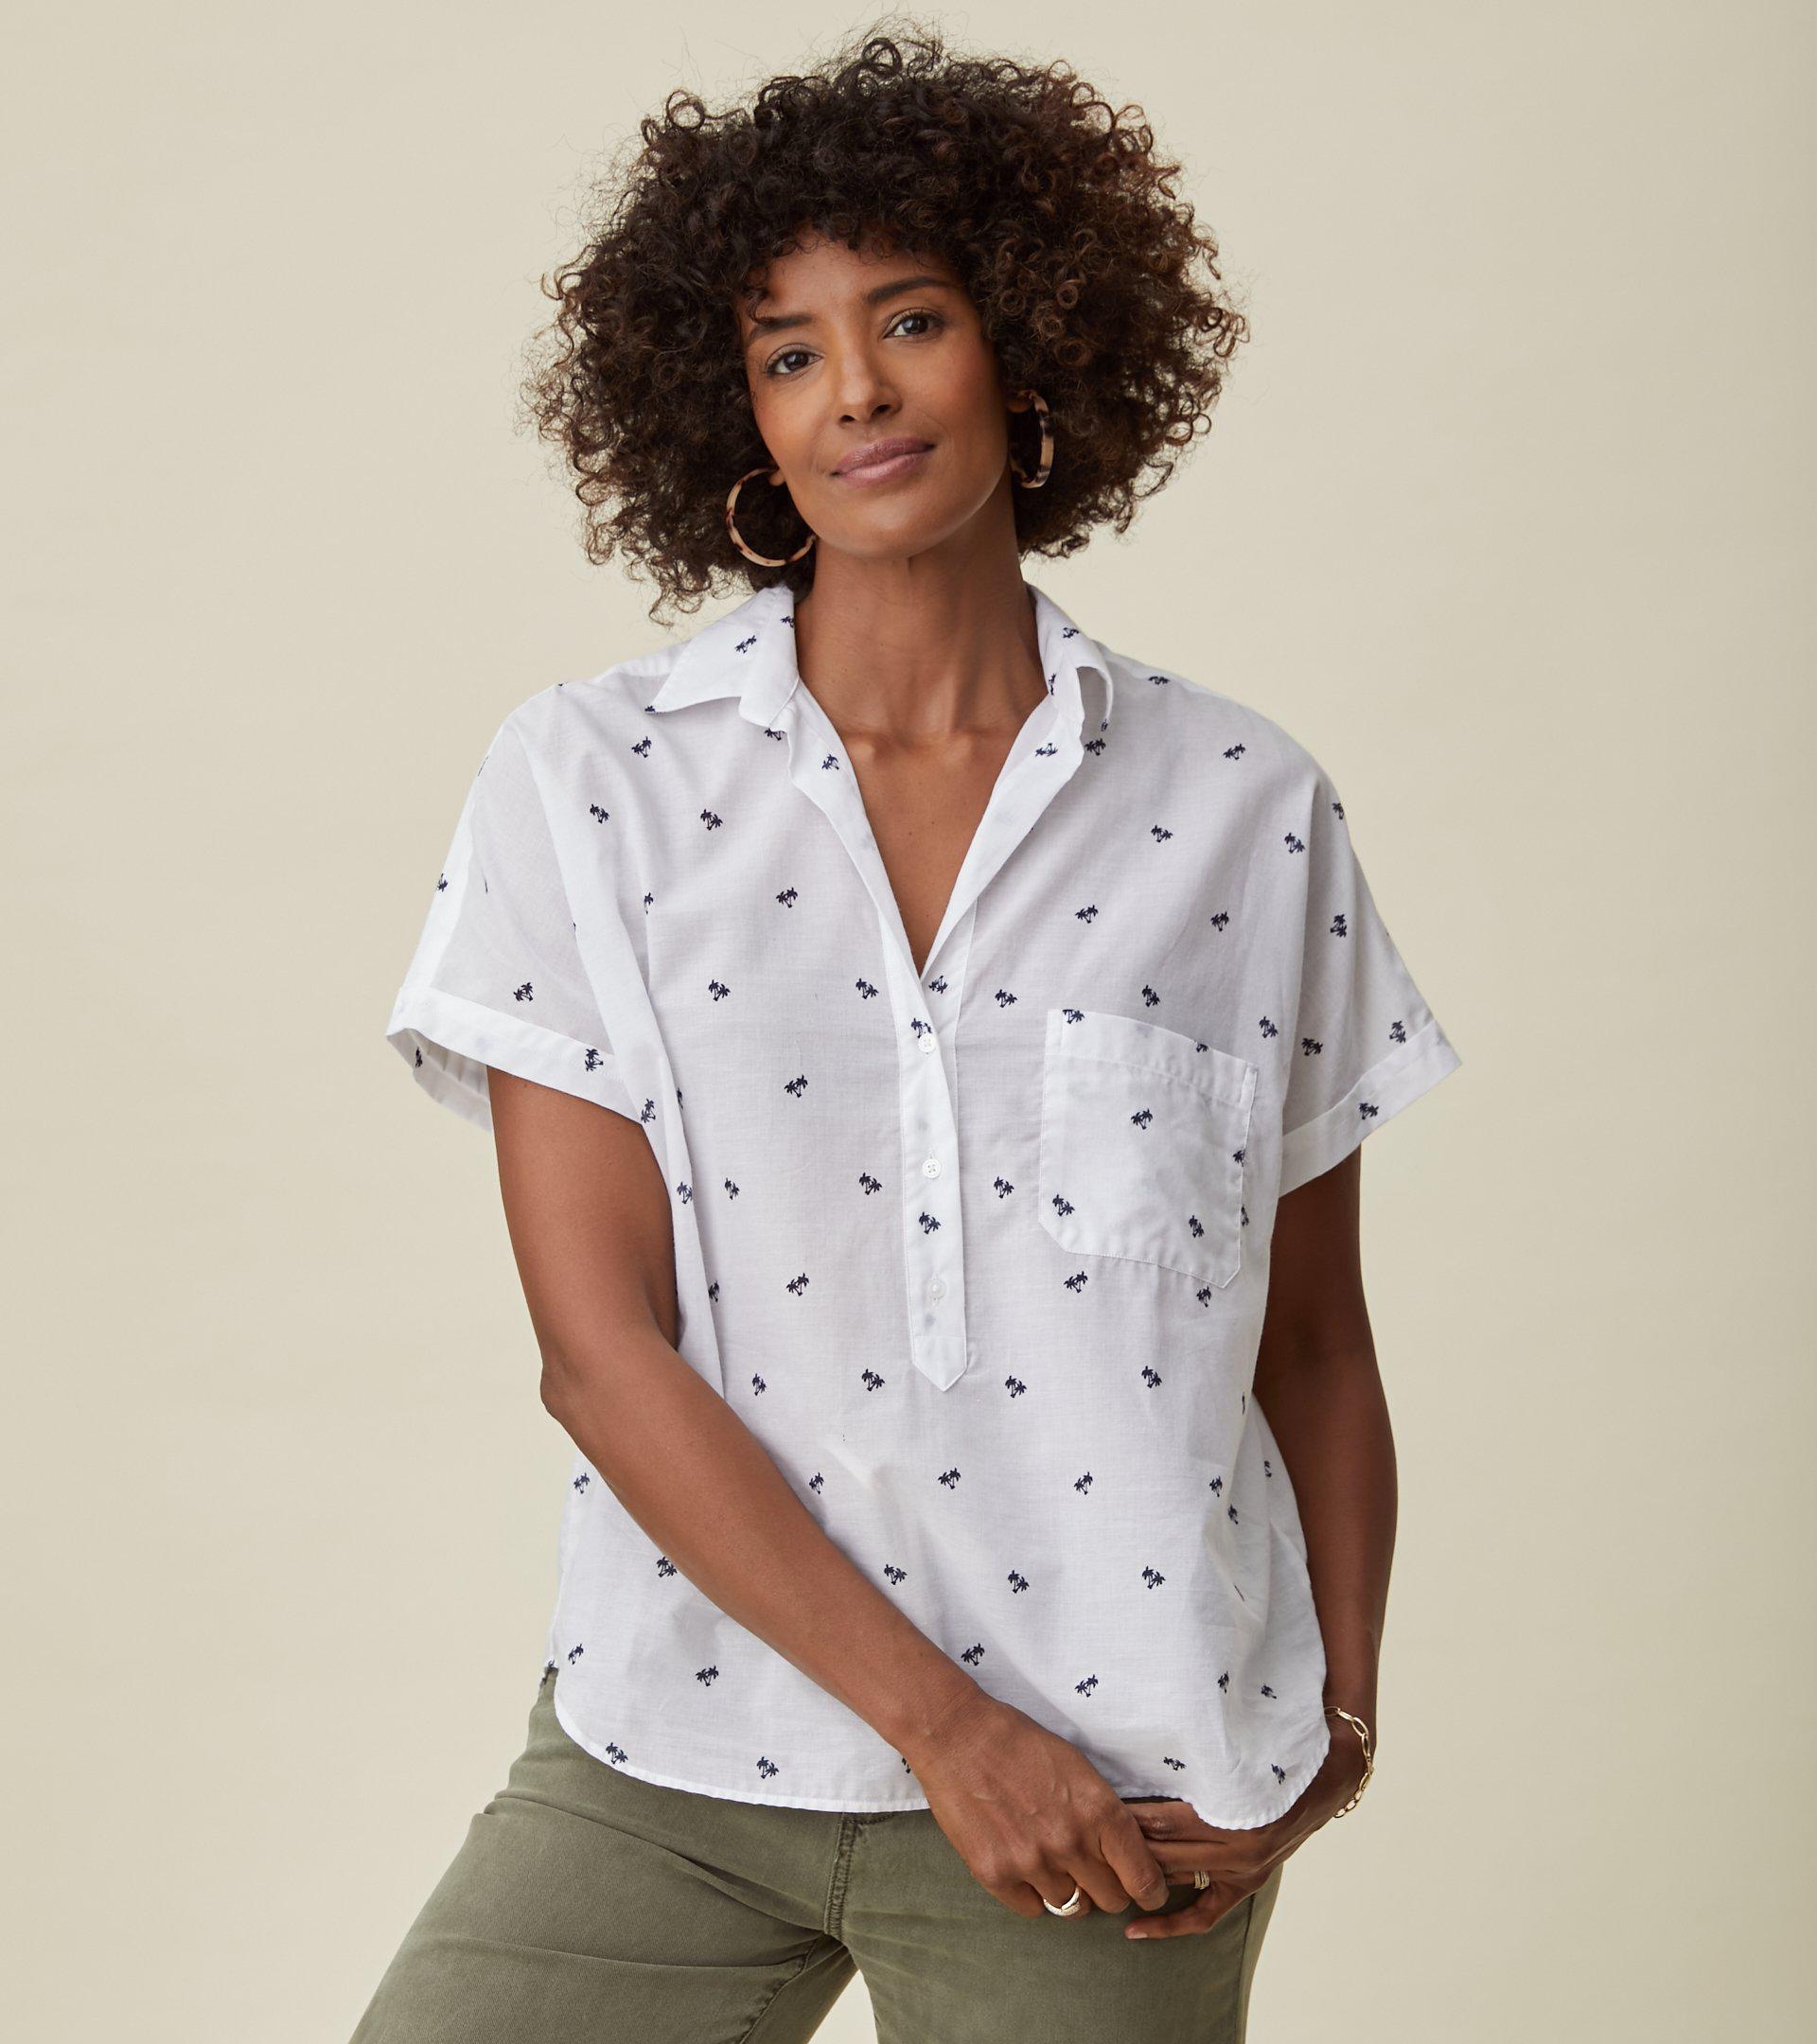 The Artist Short Sleeve Shirt White with Navy Palm, Tissue Cotton